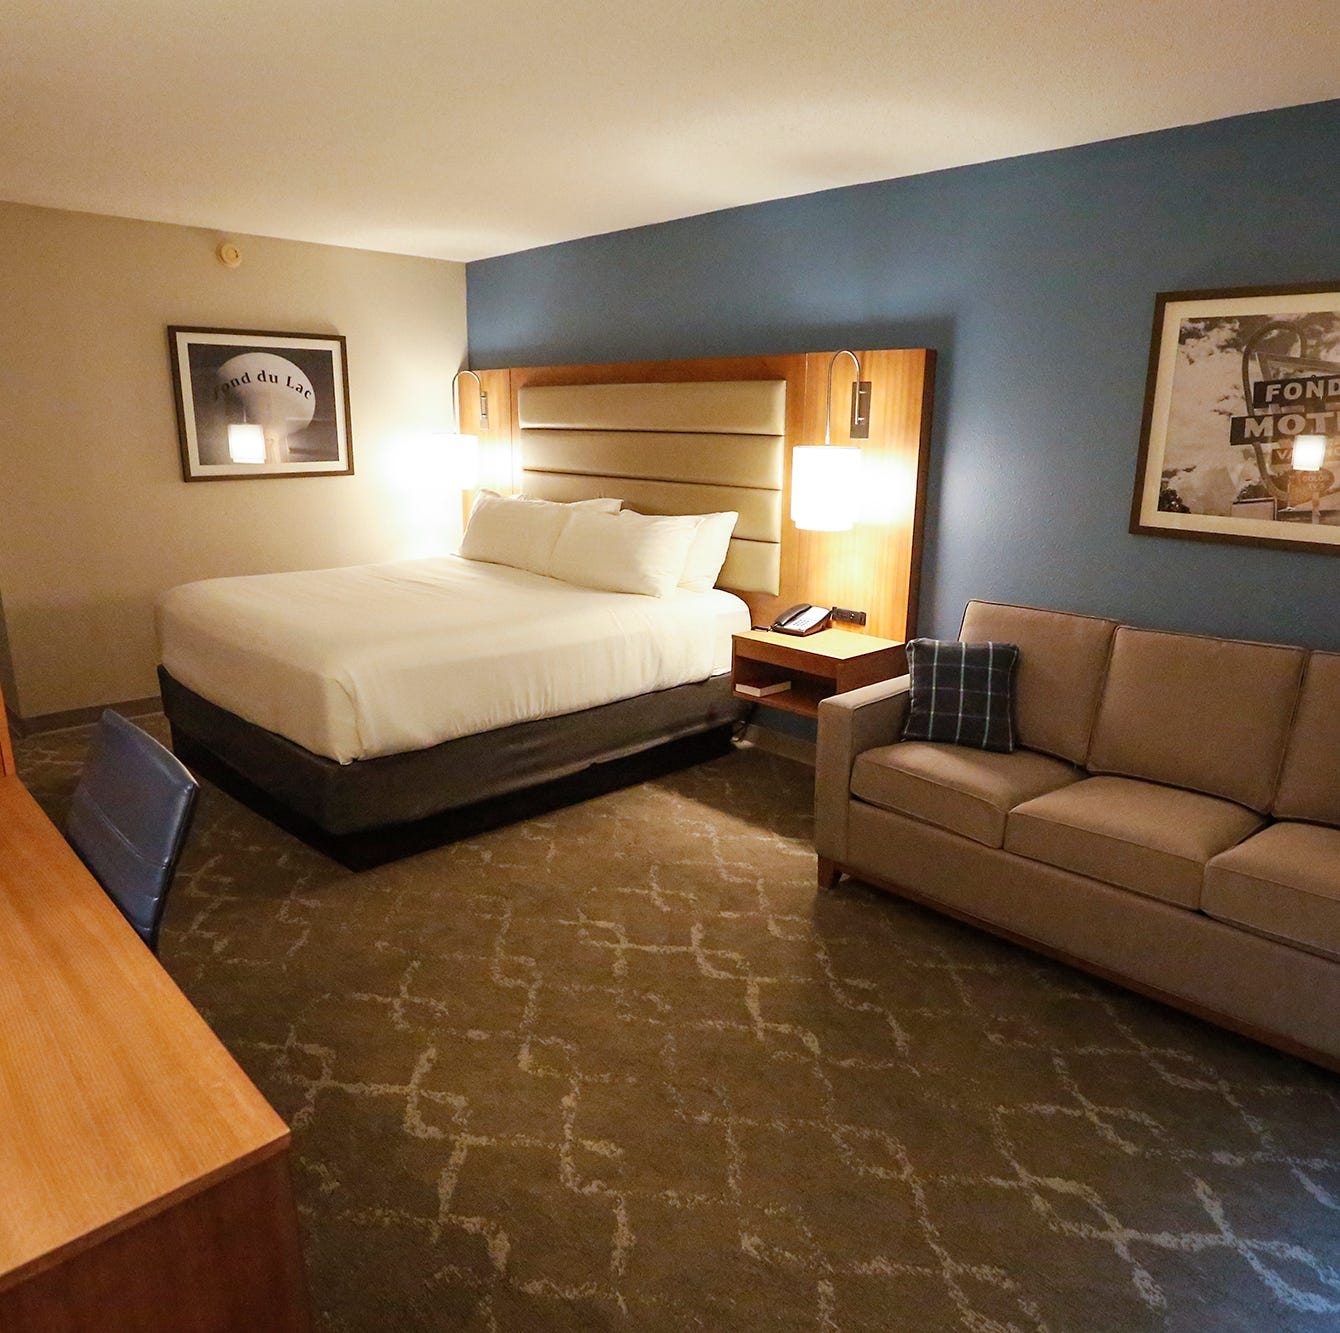 Streetwise: FDL Holiday Inn officially Radisson Hotel and Conference Center